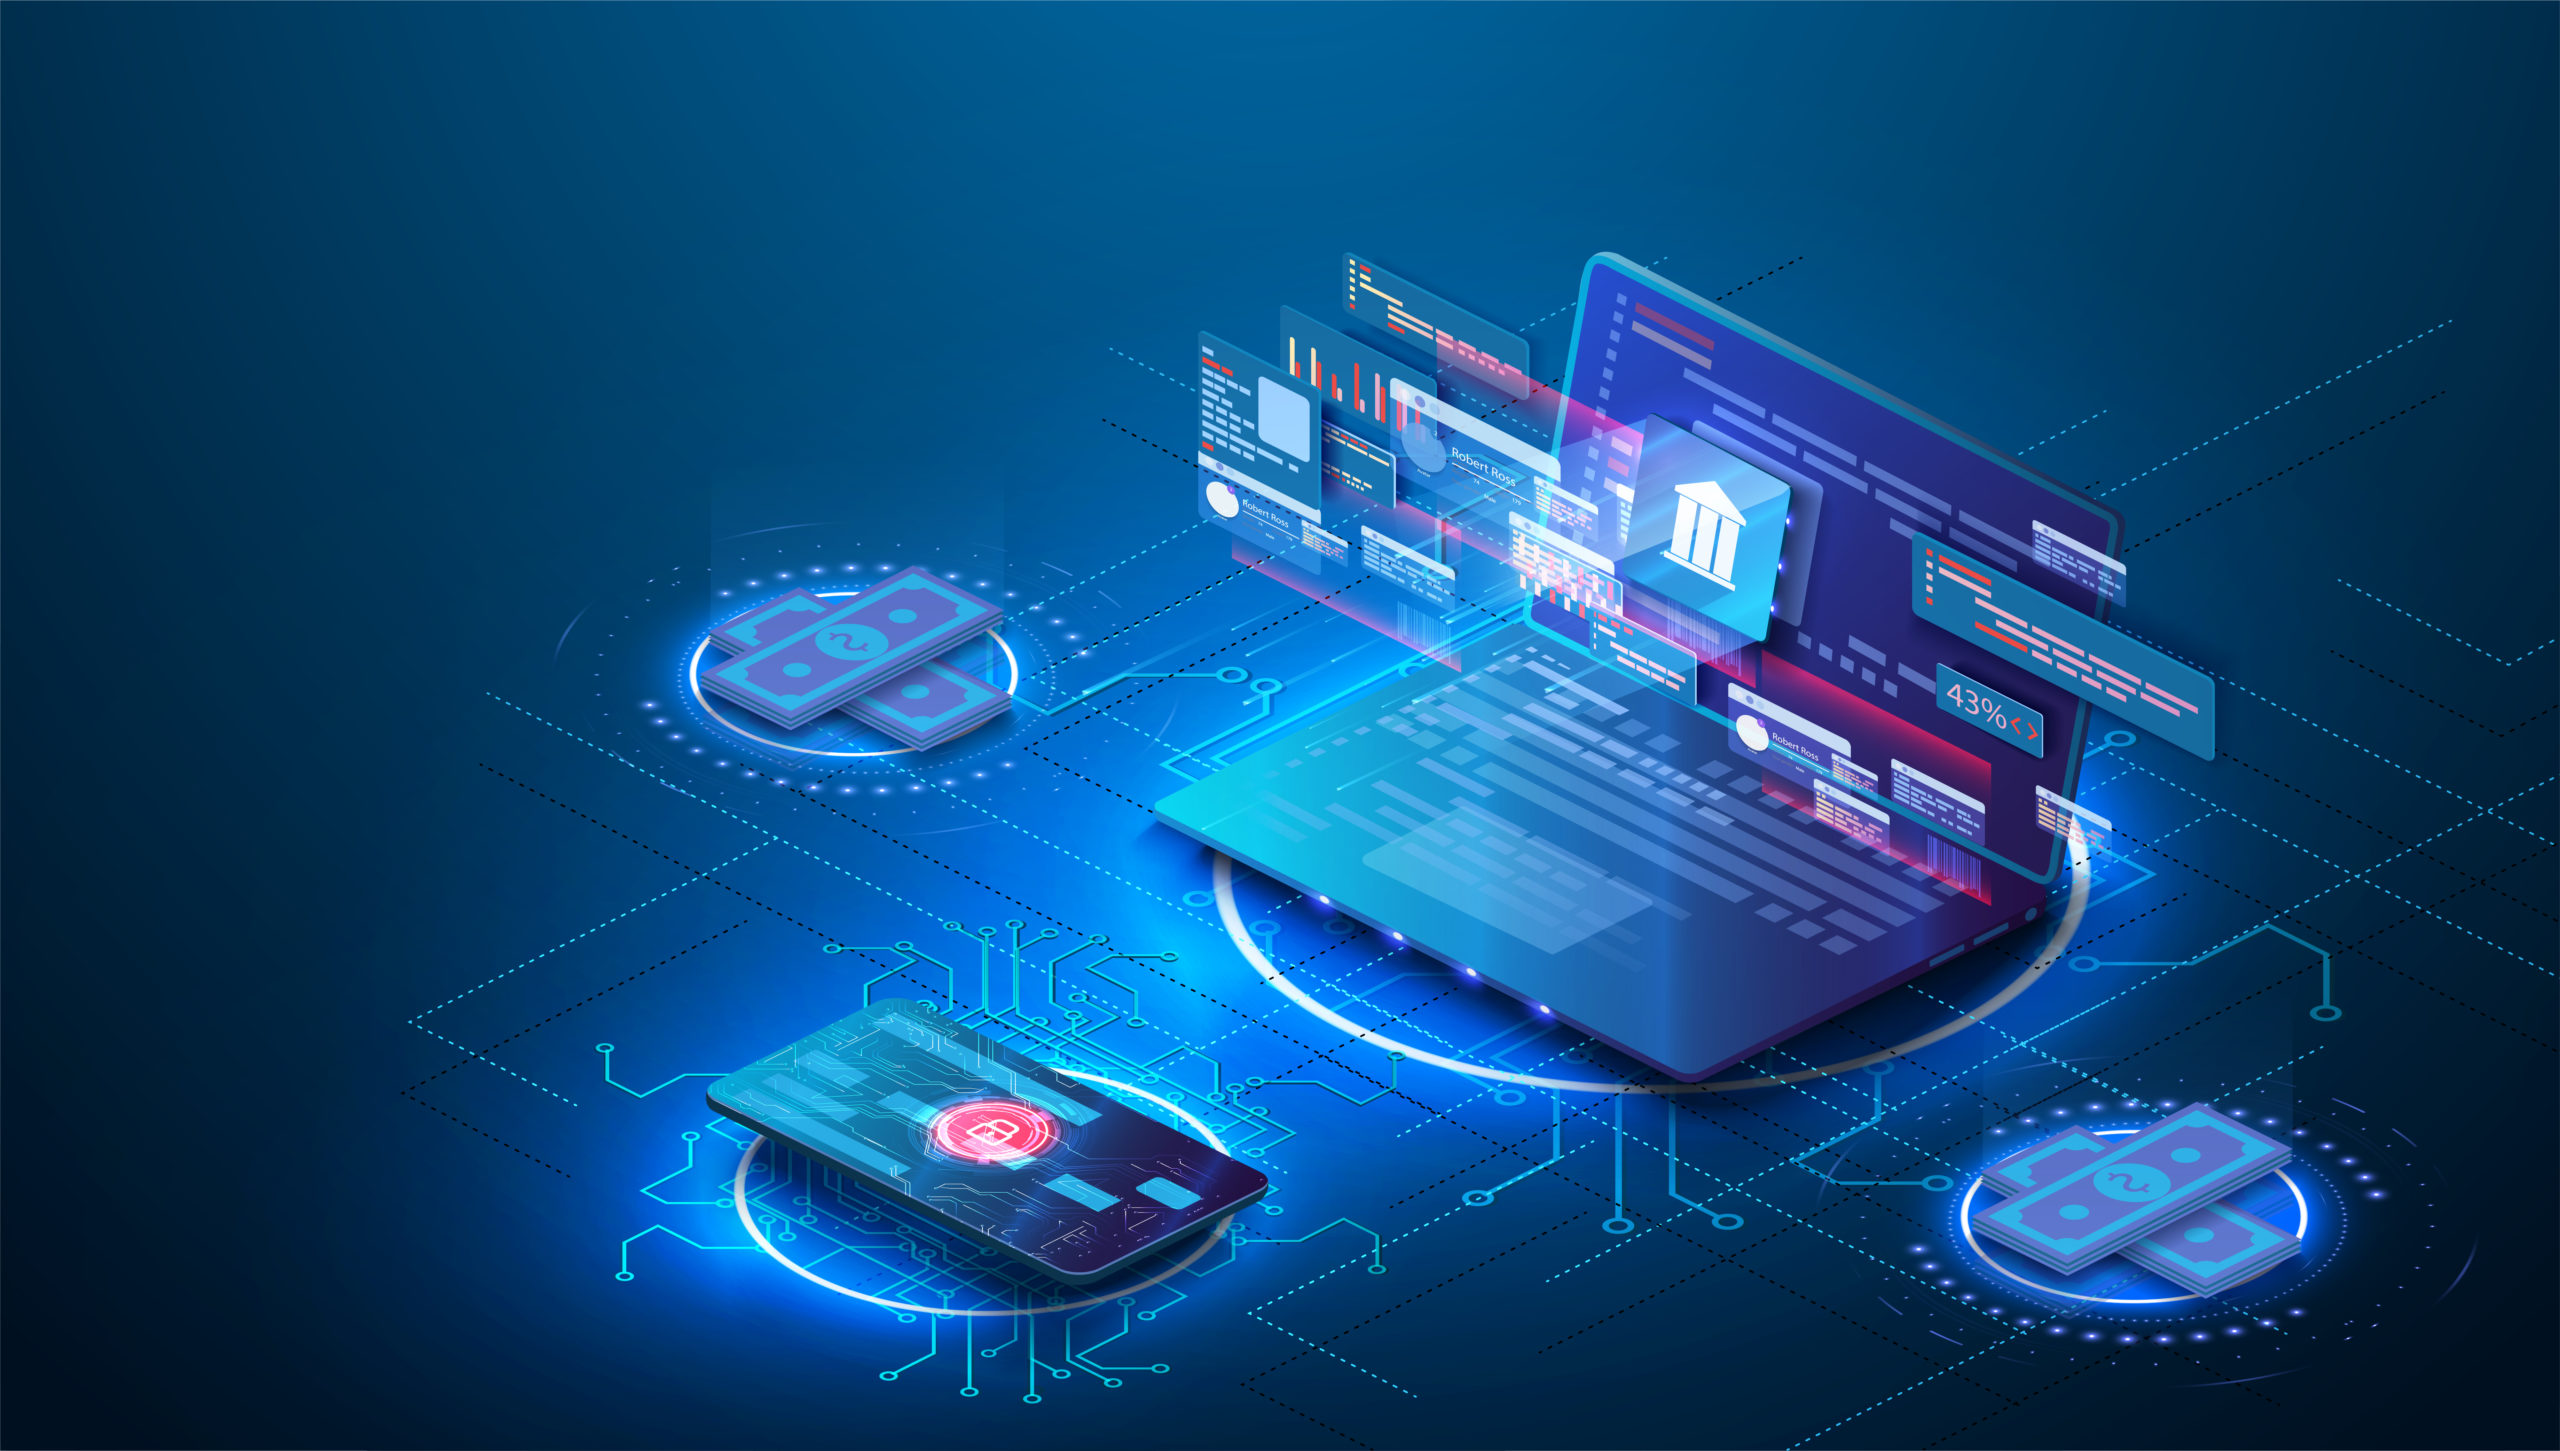 banks fintech are betting on blockchain the internet of things their challenge to achieve smart digital banking model